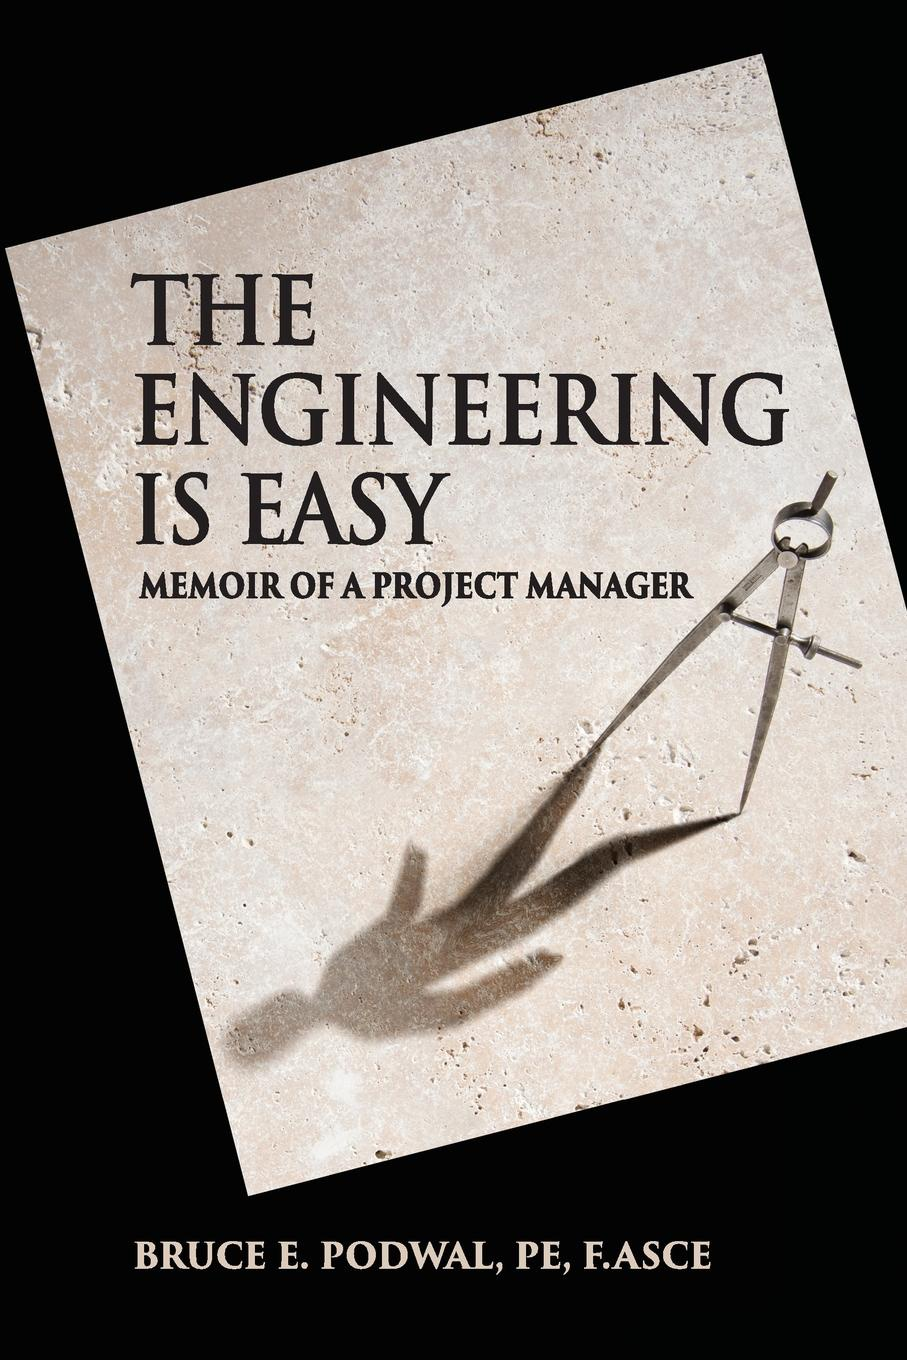 Bruce E Podwal The Engineering Is Easy. Memoir of a Project Manager